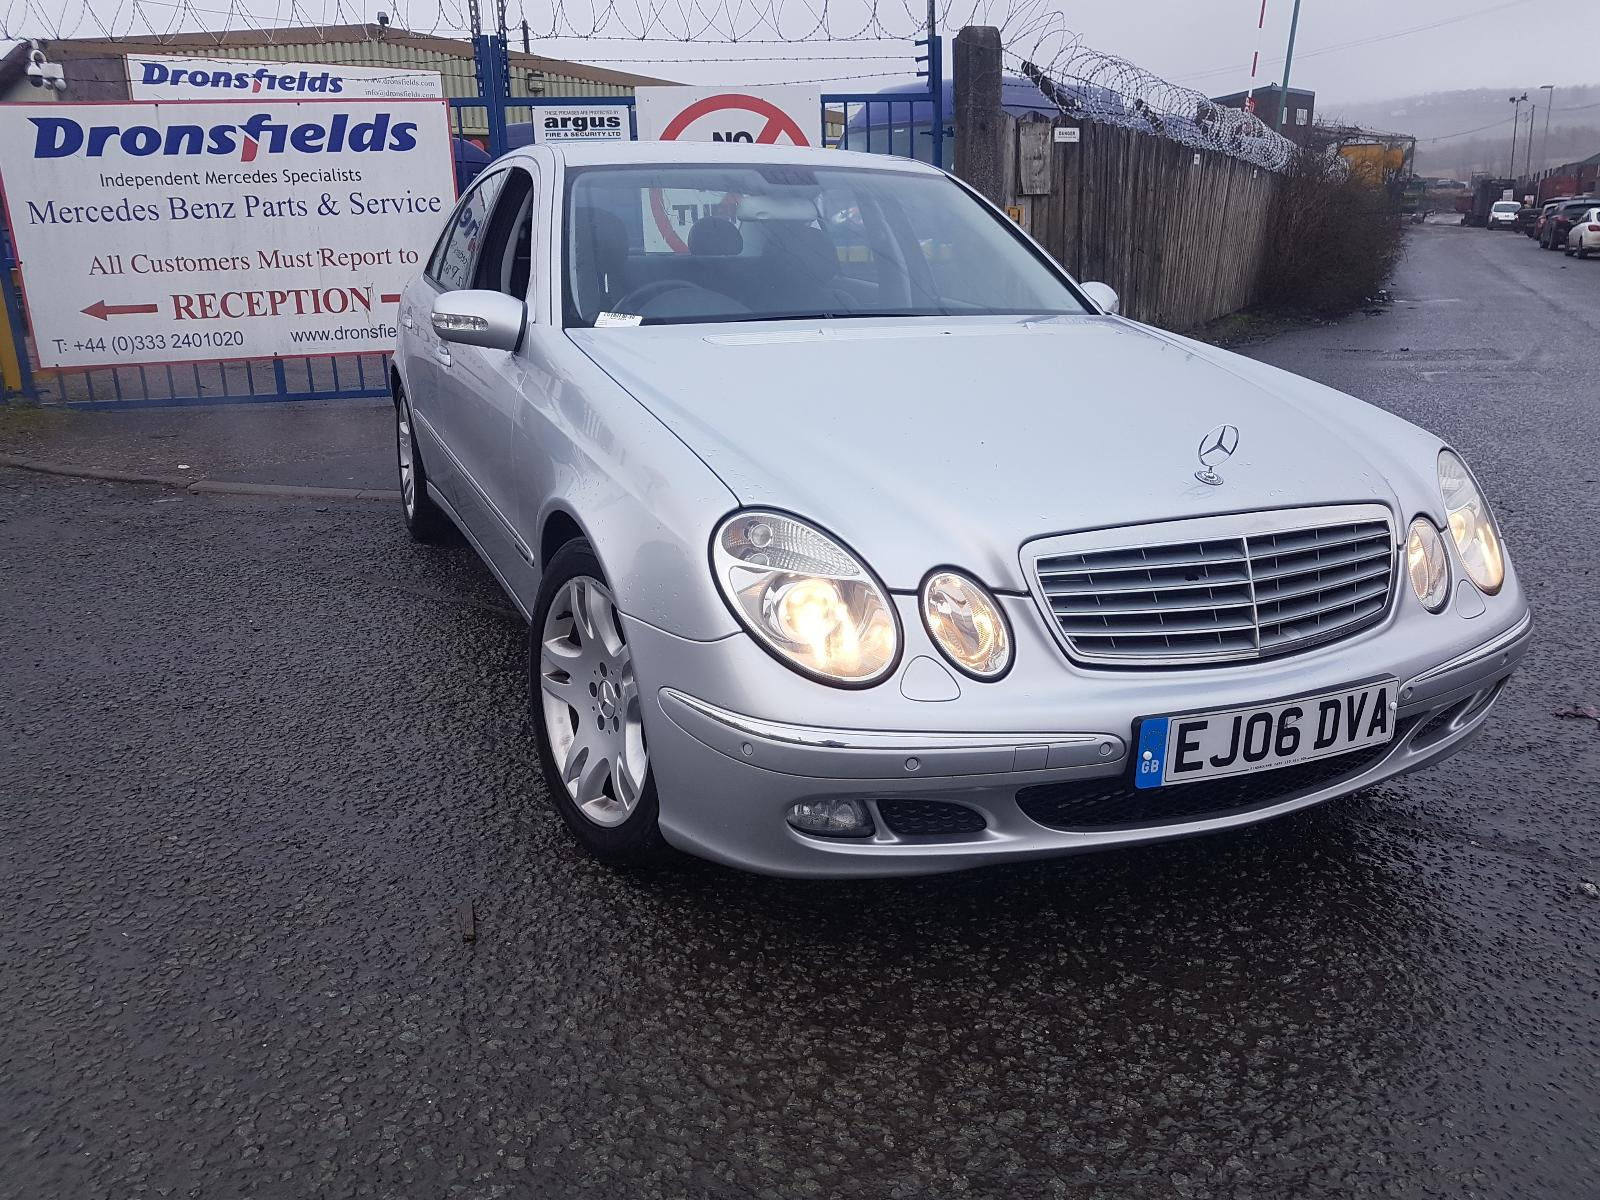 Image for a Mercedes E Class 2006 4 Door Saloon